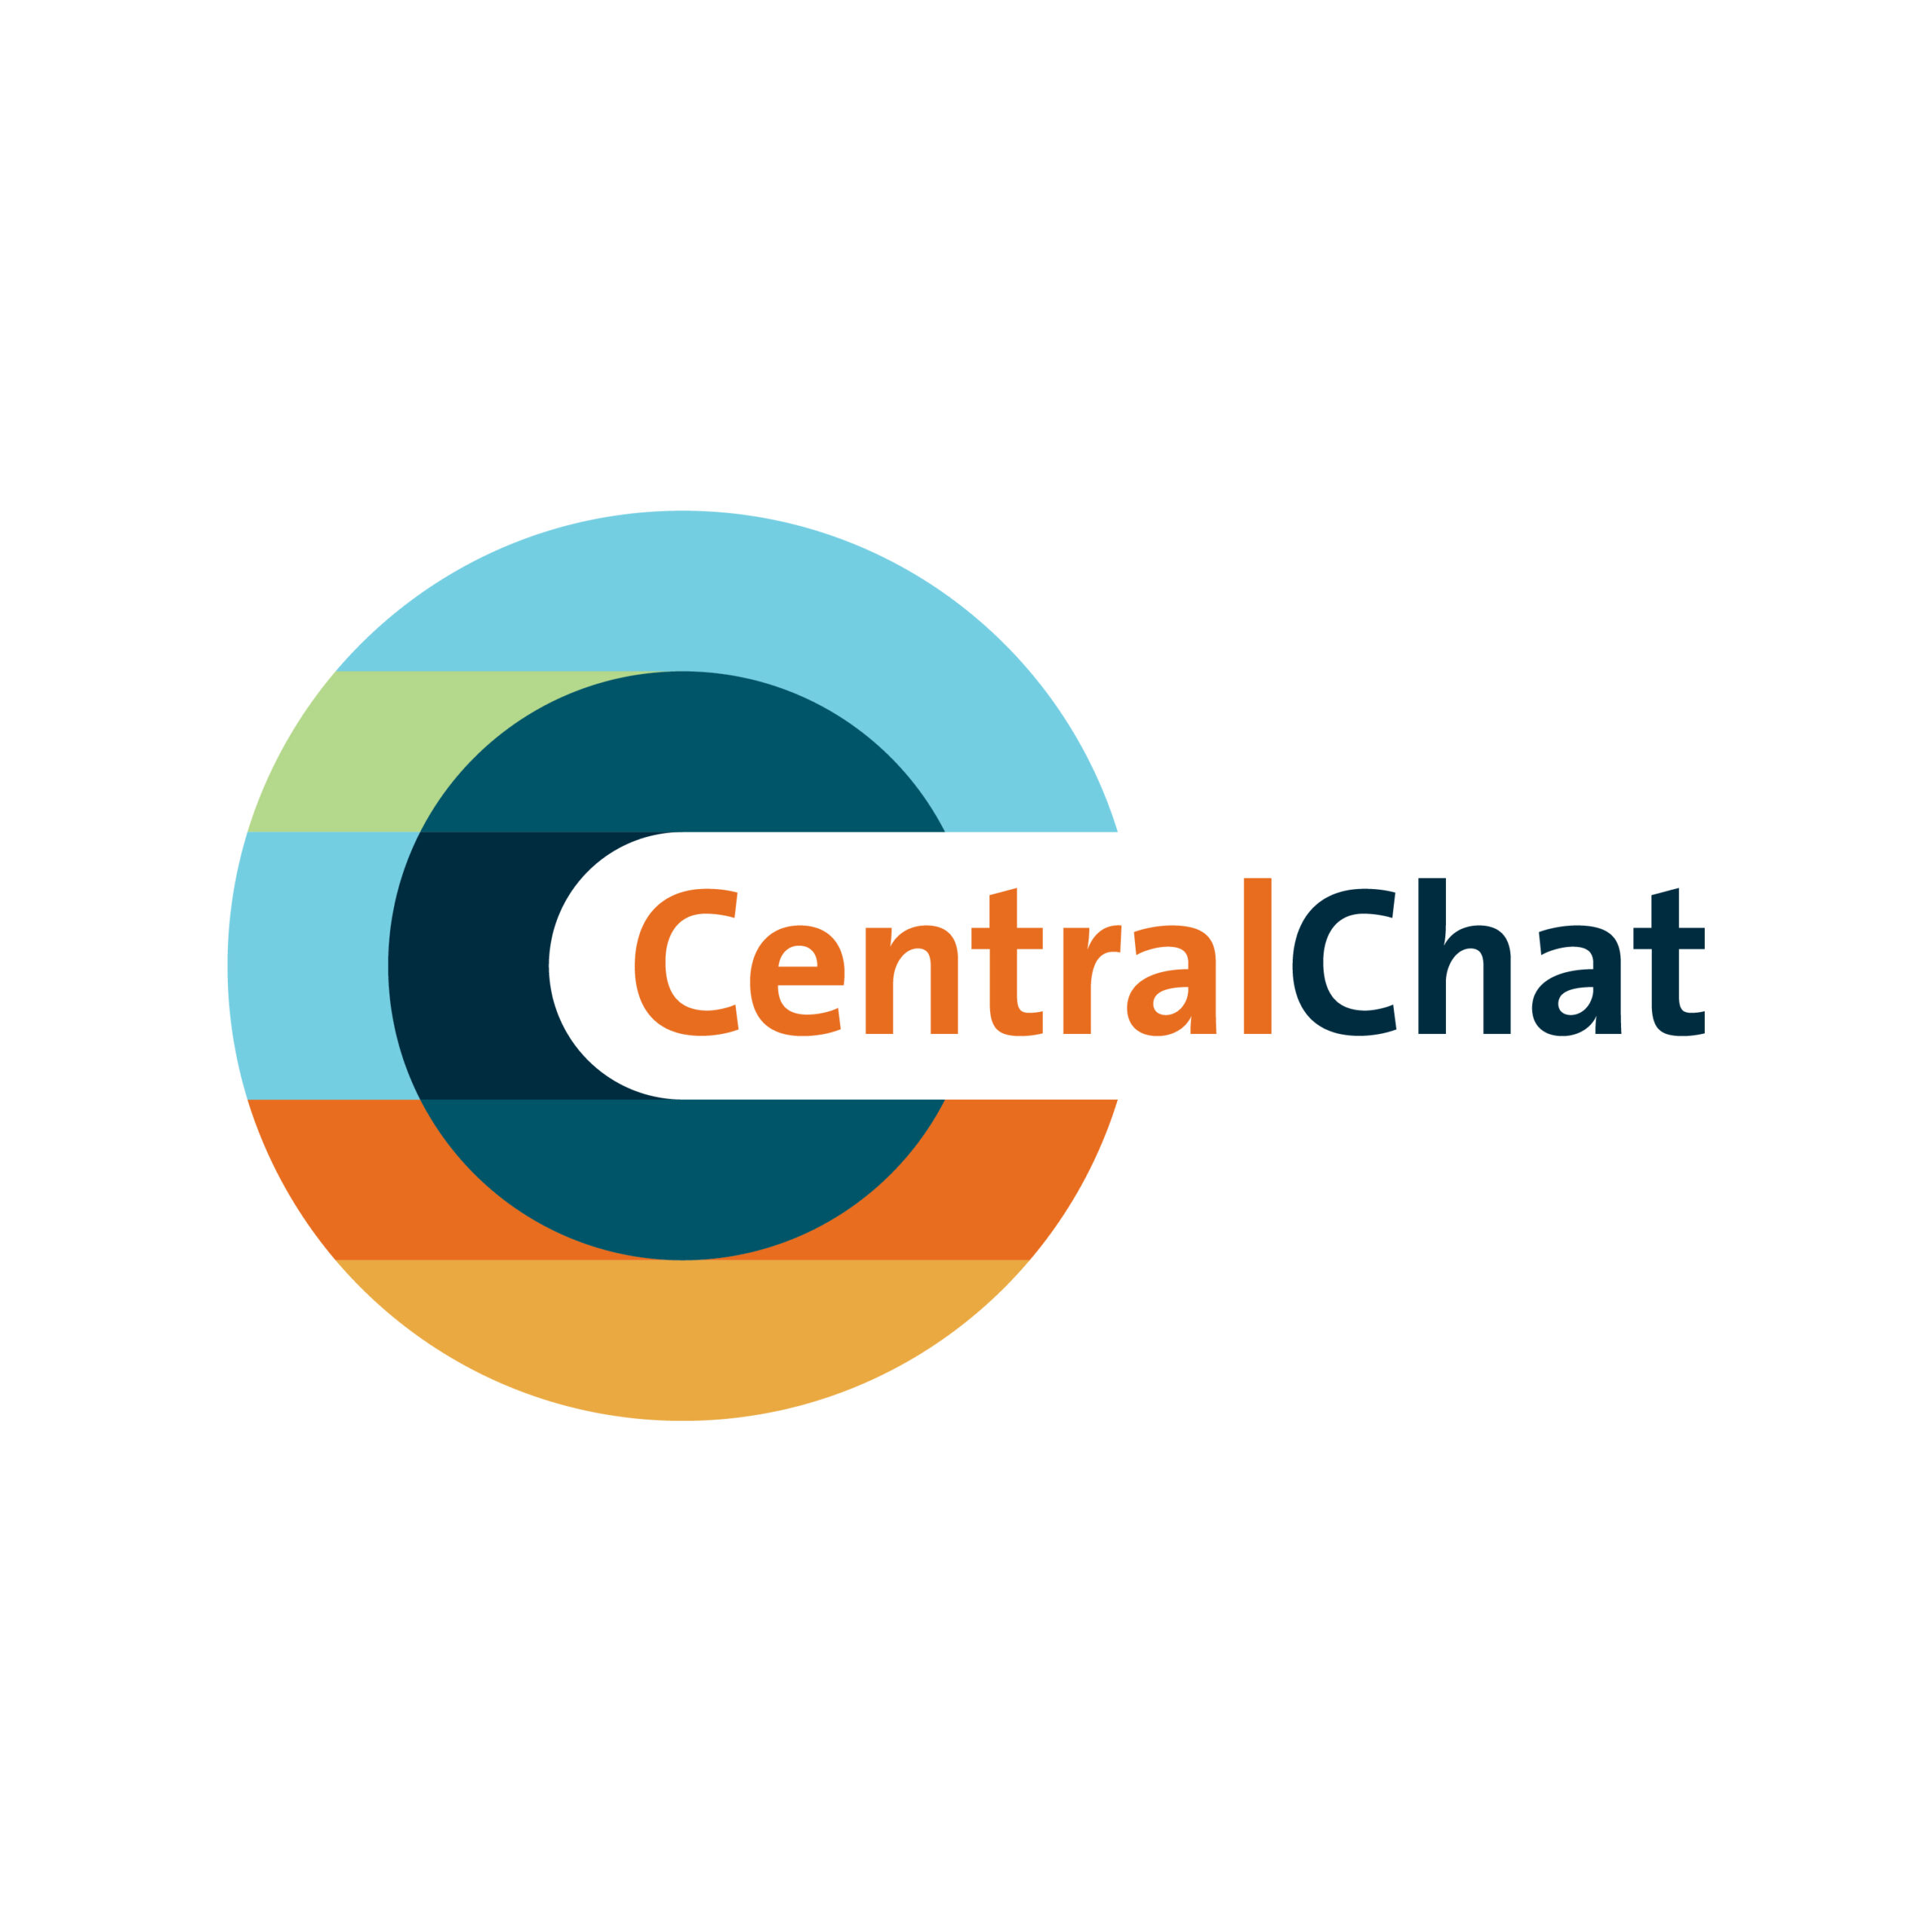 https://www.pro-manchester.co.uk/wp-content/uploads/2021/03/Central-Chat-logo-scaled.jpg